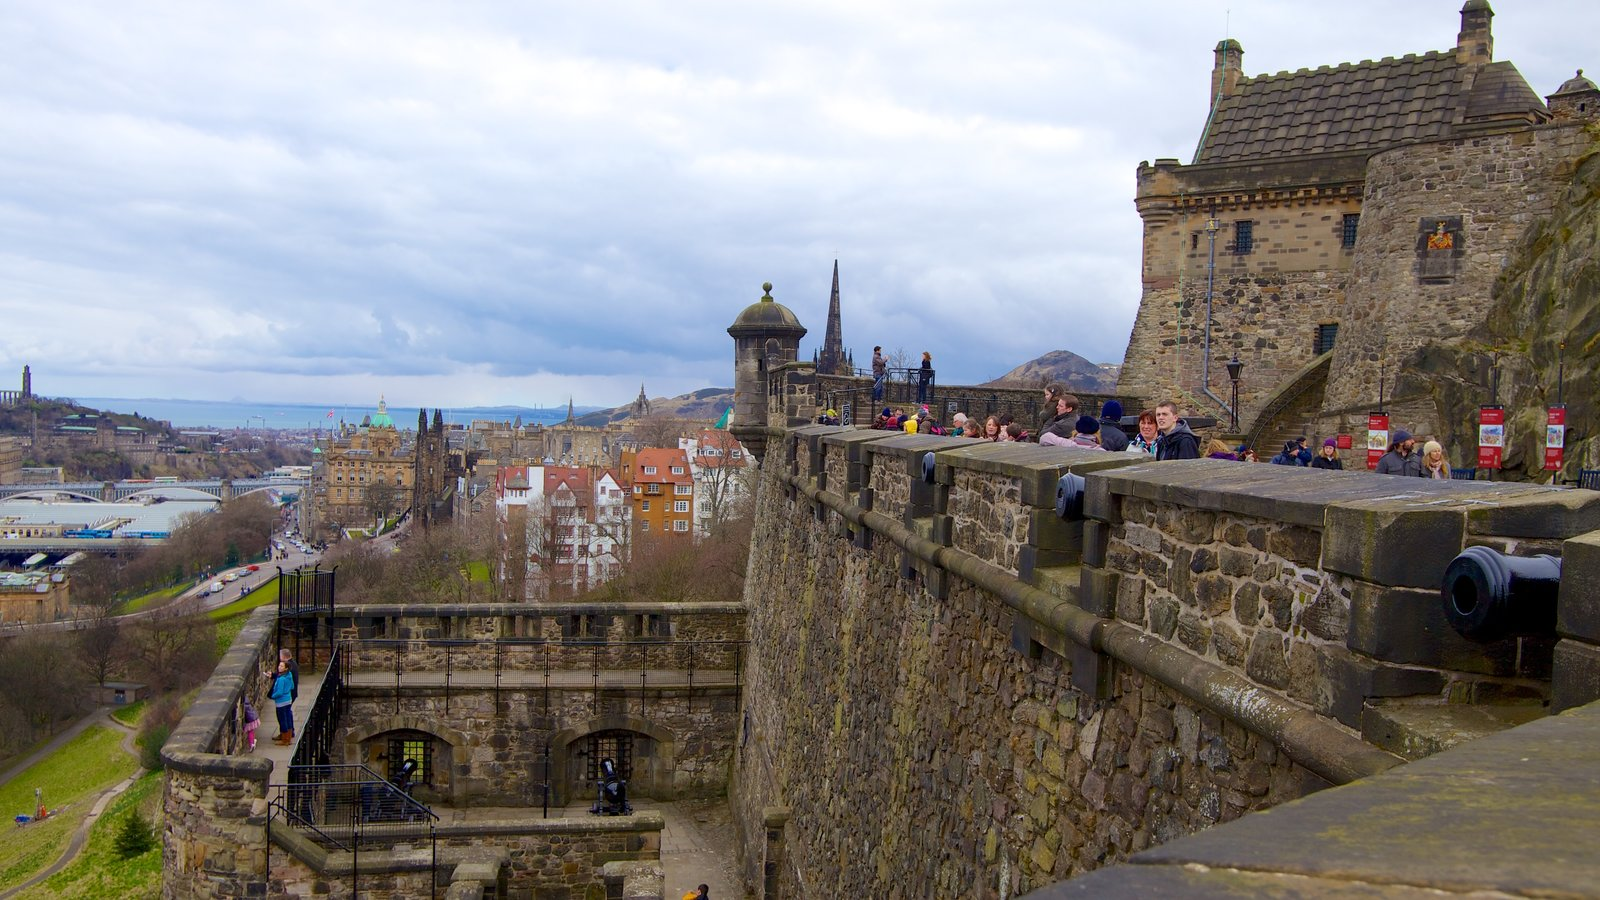 Edinburgh Castle which includes a castle, heritage architecture and views